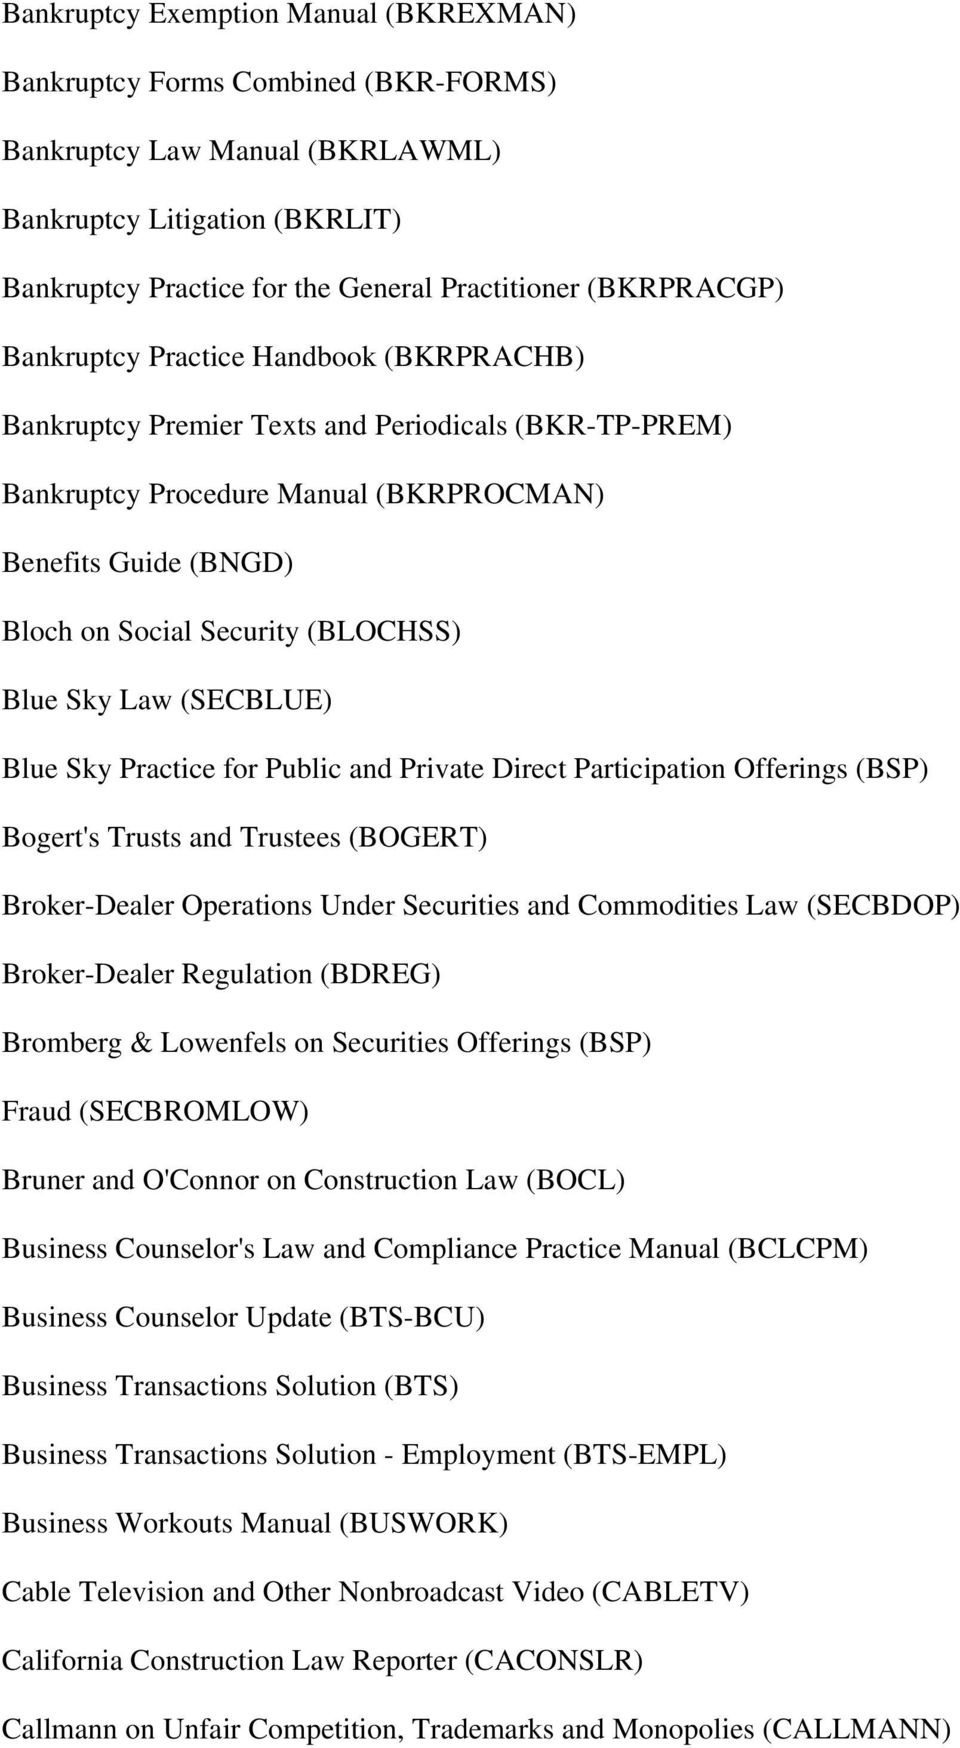 (BLOCHSS) Blue Sky Law (SECBLUE) Blue Sky Practice for Public and Private Direct Participation Offerings (BSP) Bogert's Trusts and Trustees (BOGERT) Broker-Dealer Operations Under Securities and